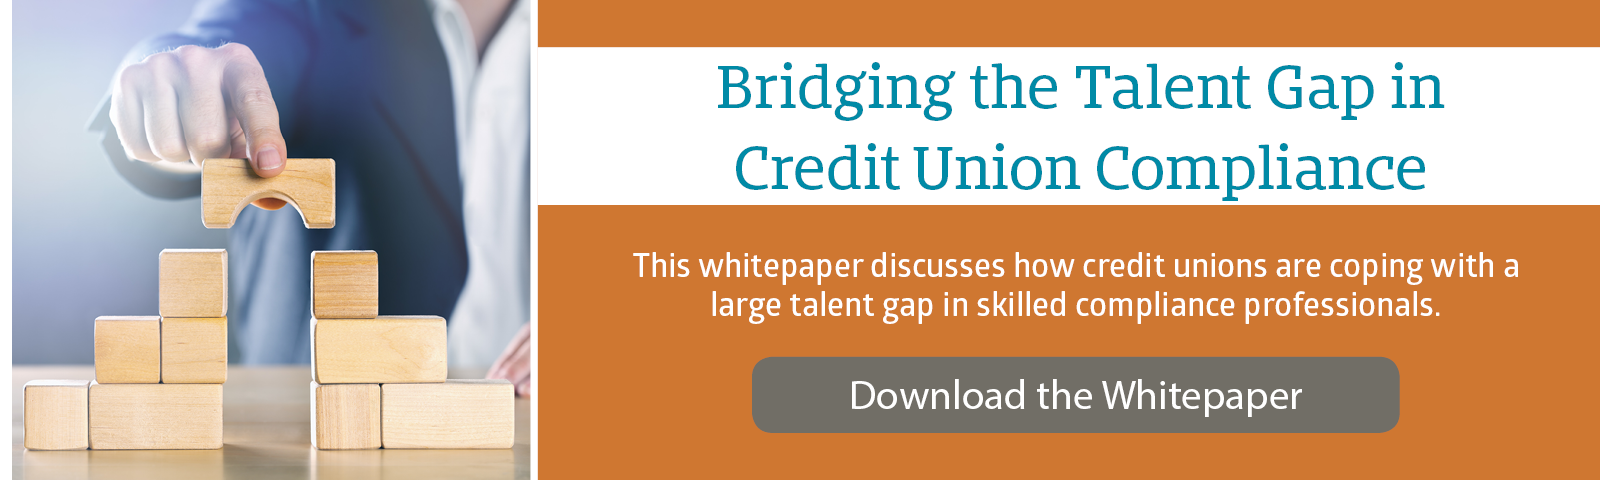 Whitepaper: Bridging the Talent Gap in Credit Union Compliance